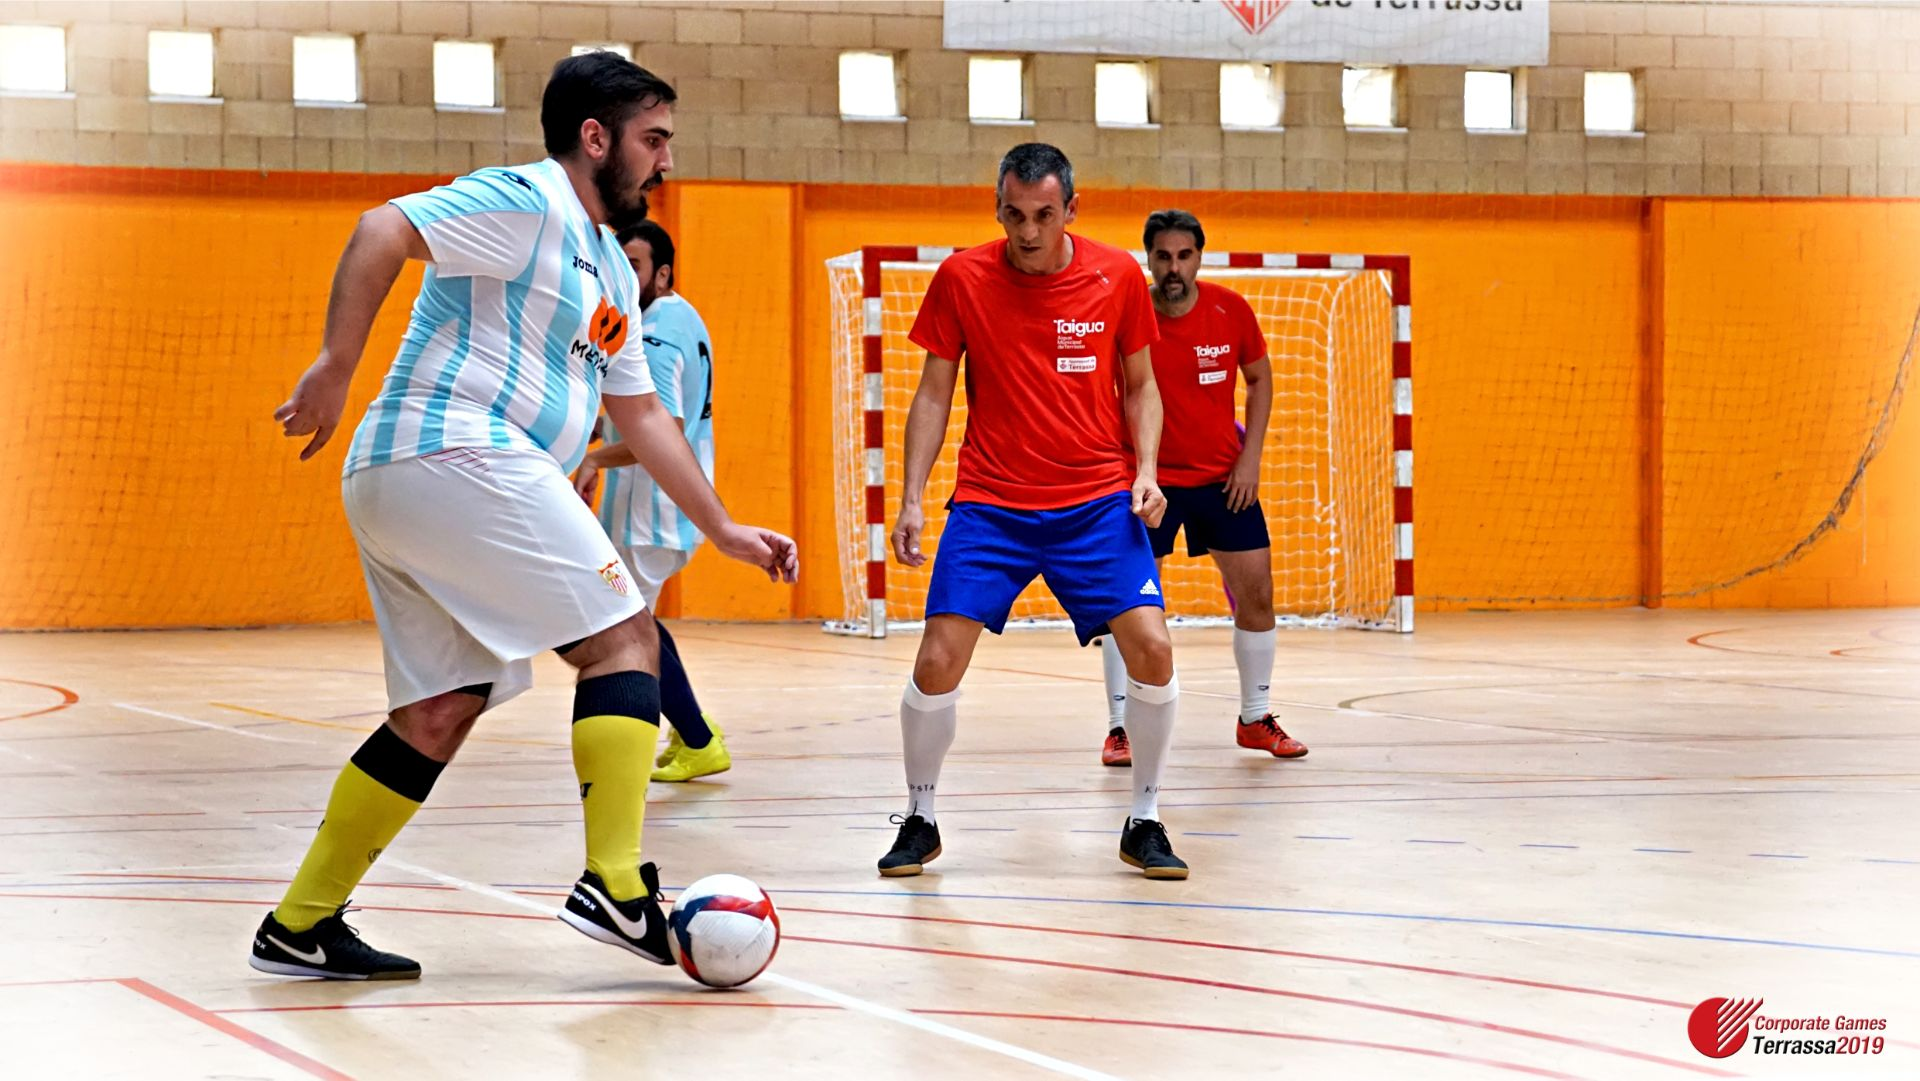 CORPORATE GAMES TERRASSA 2019-09-14 Corp Gam Terr-00263